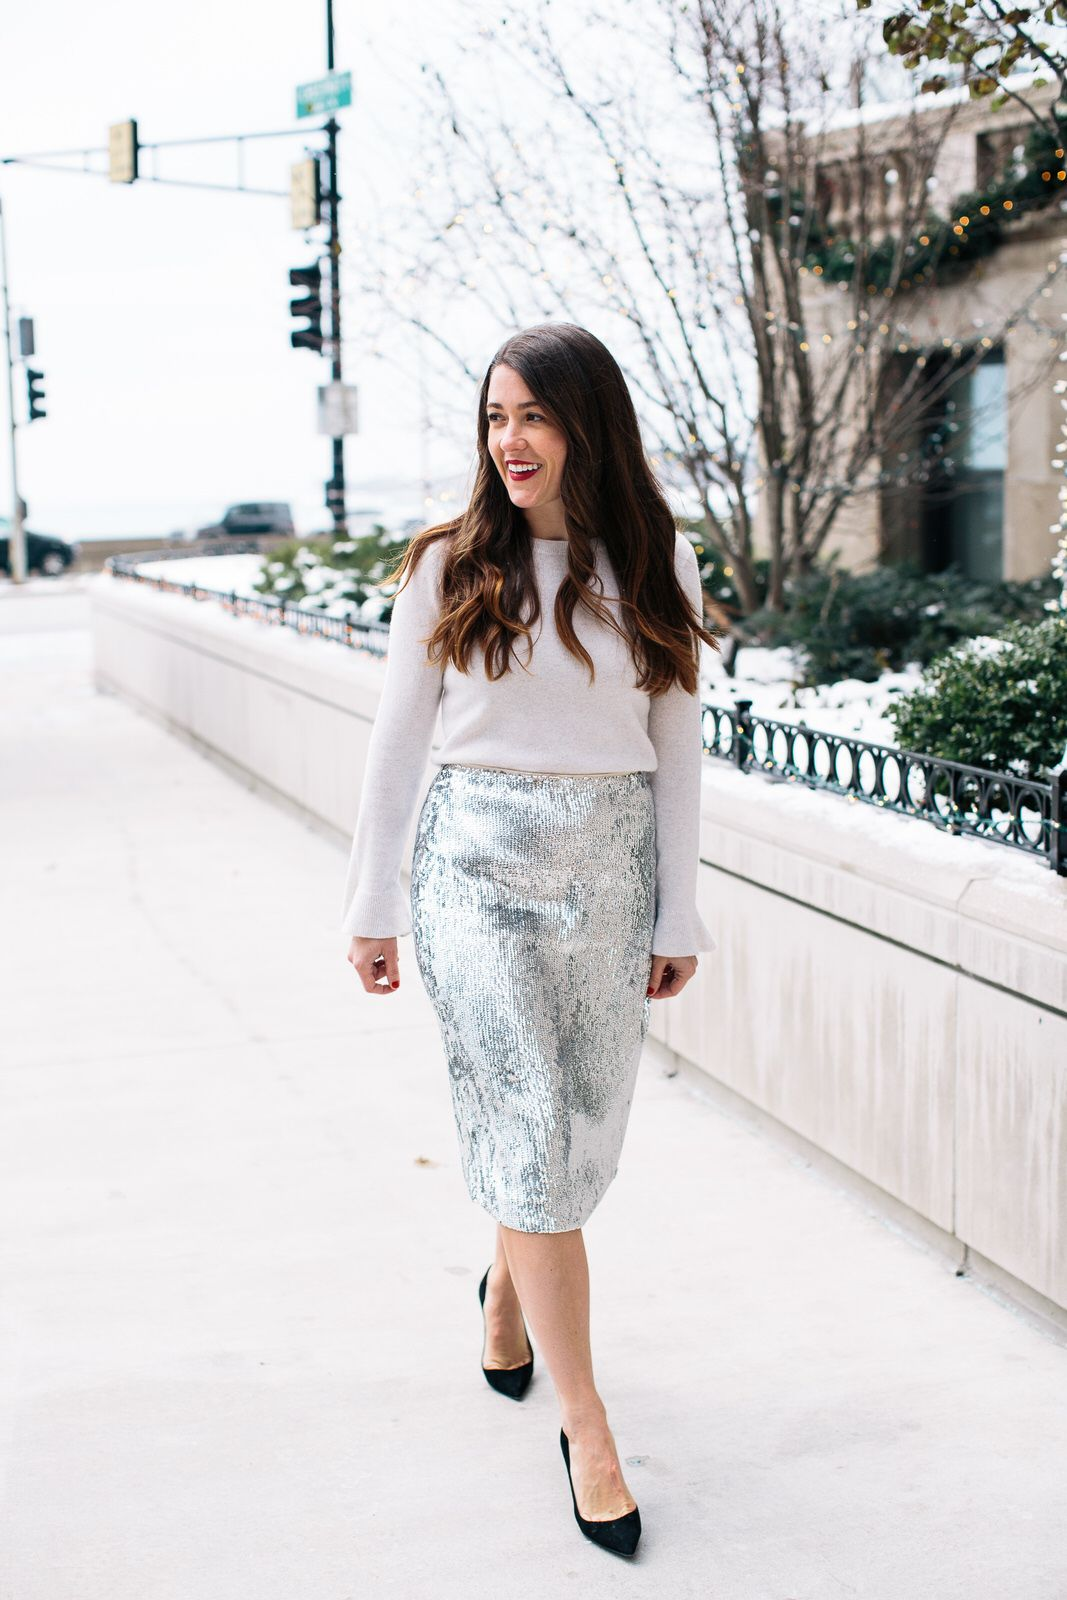 Sequins for the Holidays - Holiday Outfit Ideas - Sequins   Stripes ... 737f6aecd